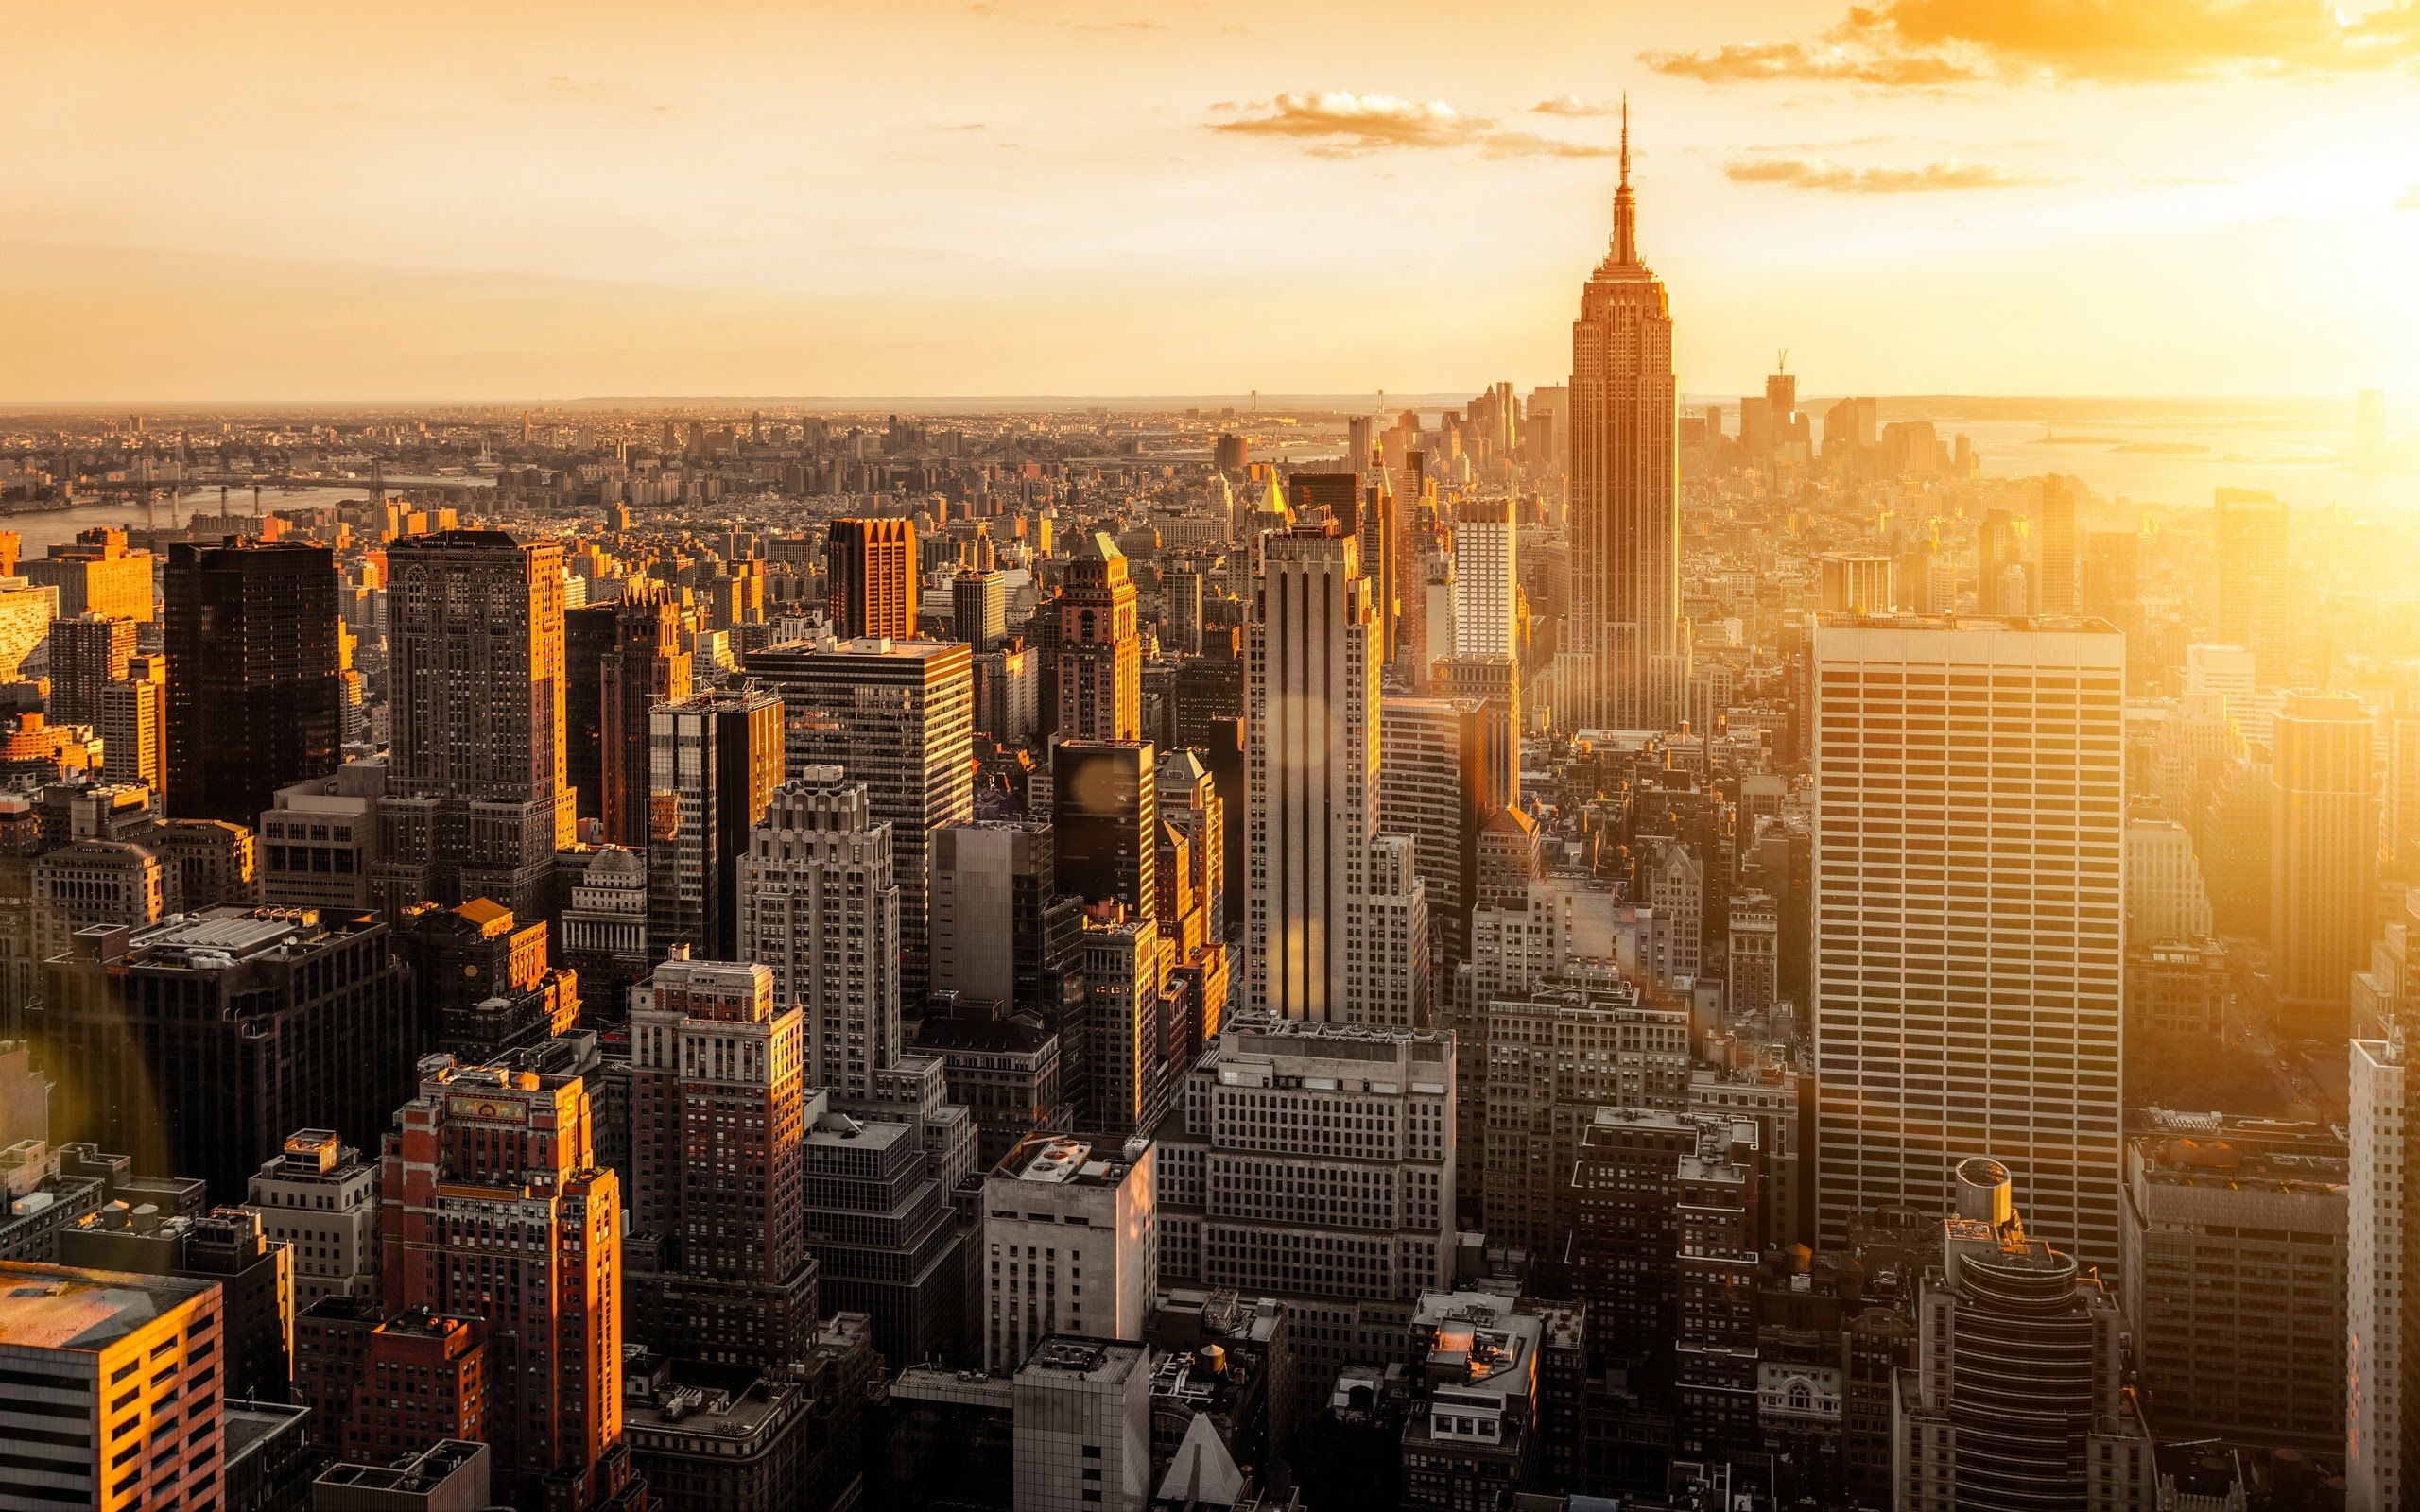 Royalty Free Images Pesquisa Google New York Wallpaper New York City Background Visiting Nyc